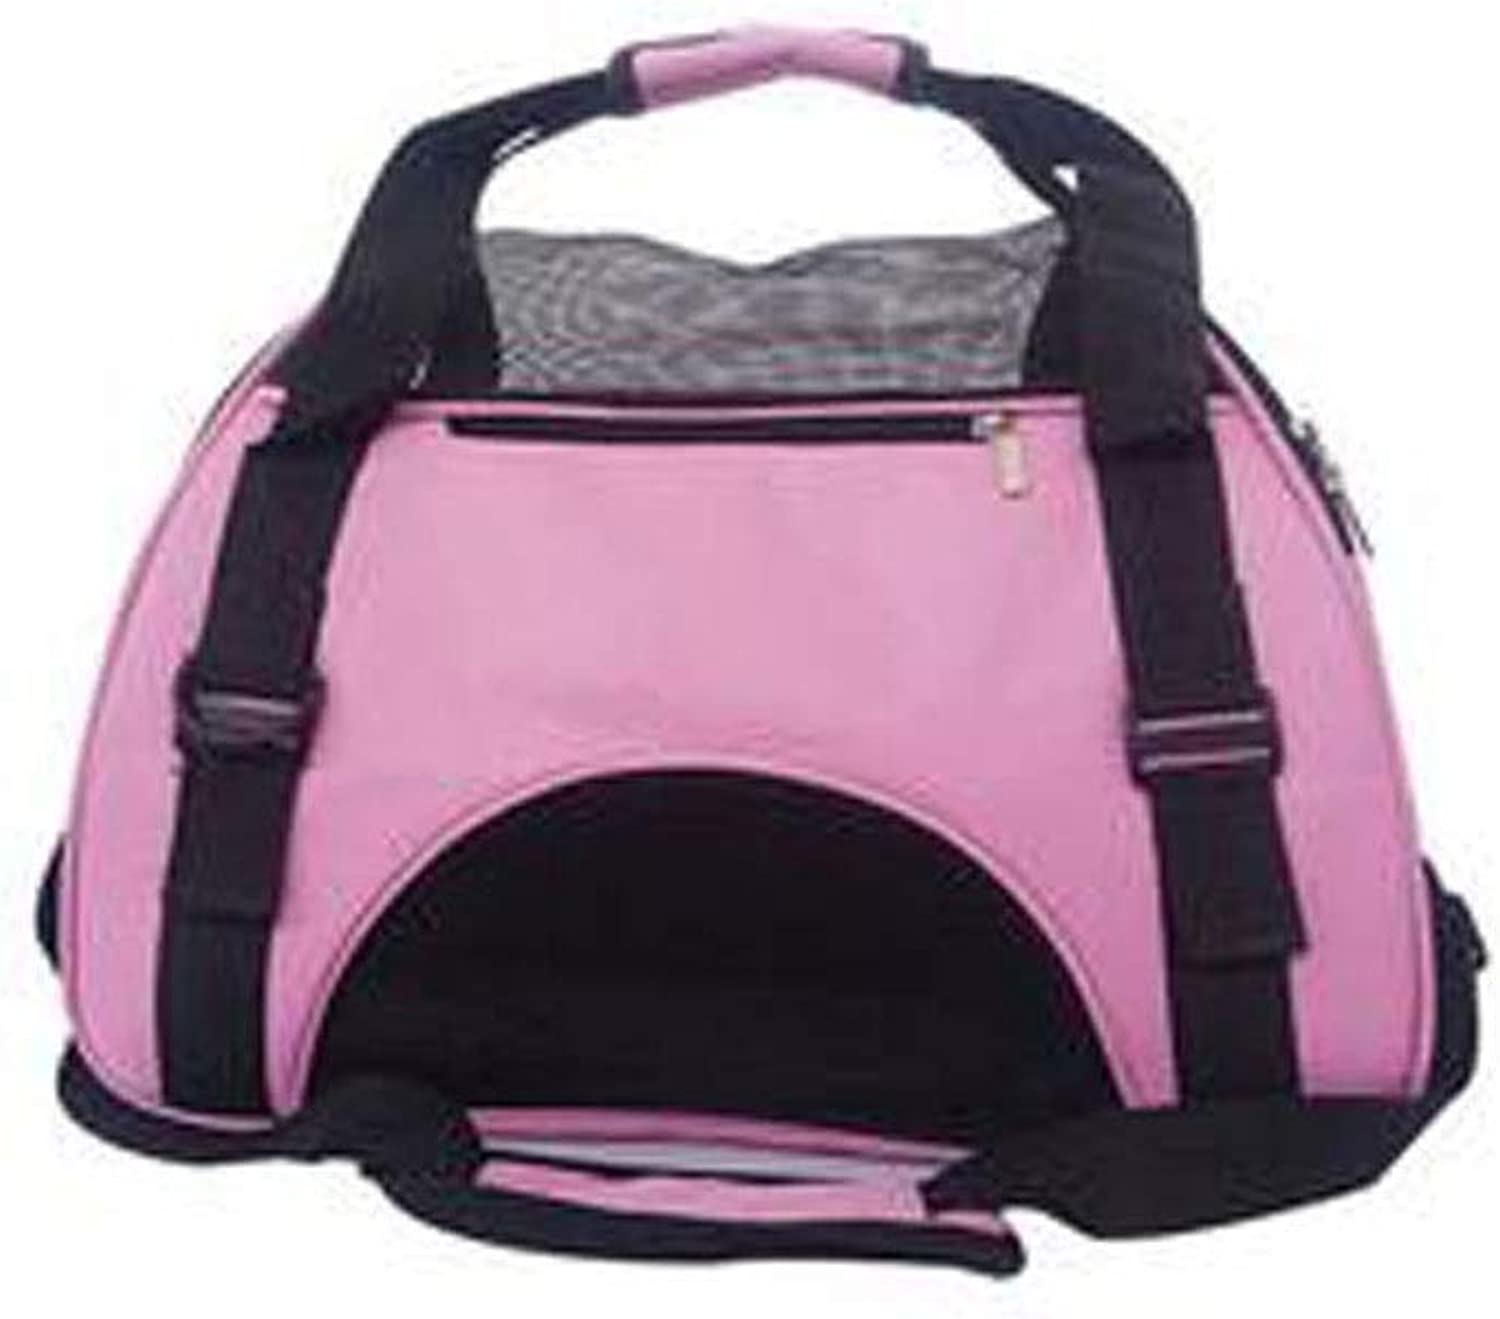 493f3cbf1e58 Guyuexuan Casual Pet Carrying Ideal for Cats and Puppies, Suitable ...